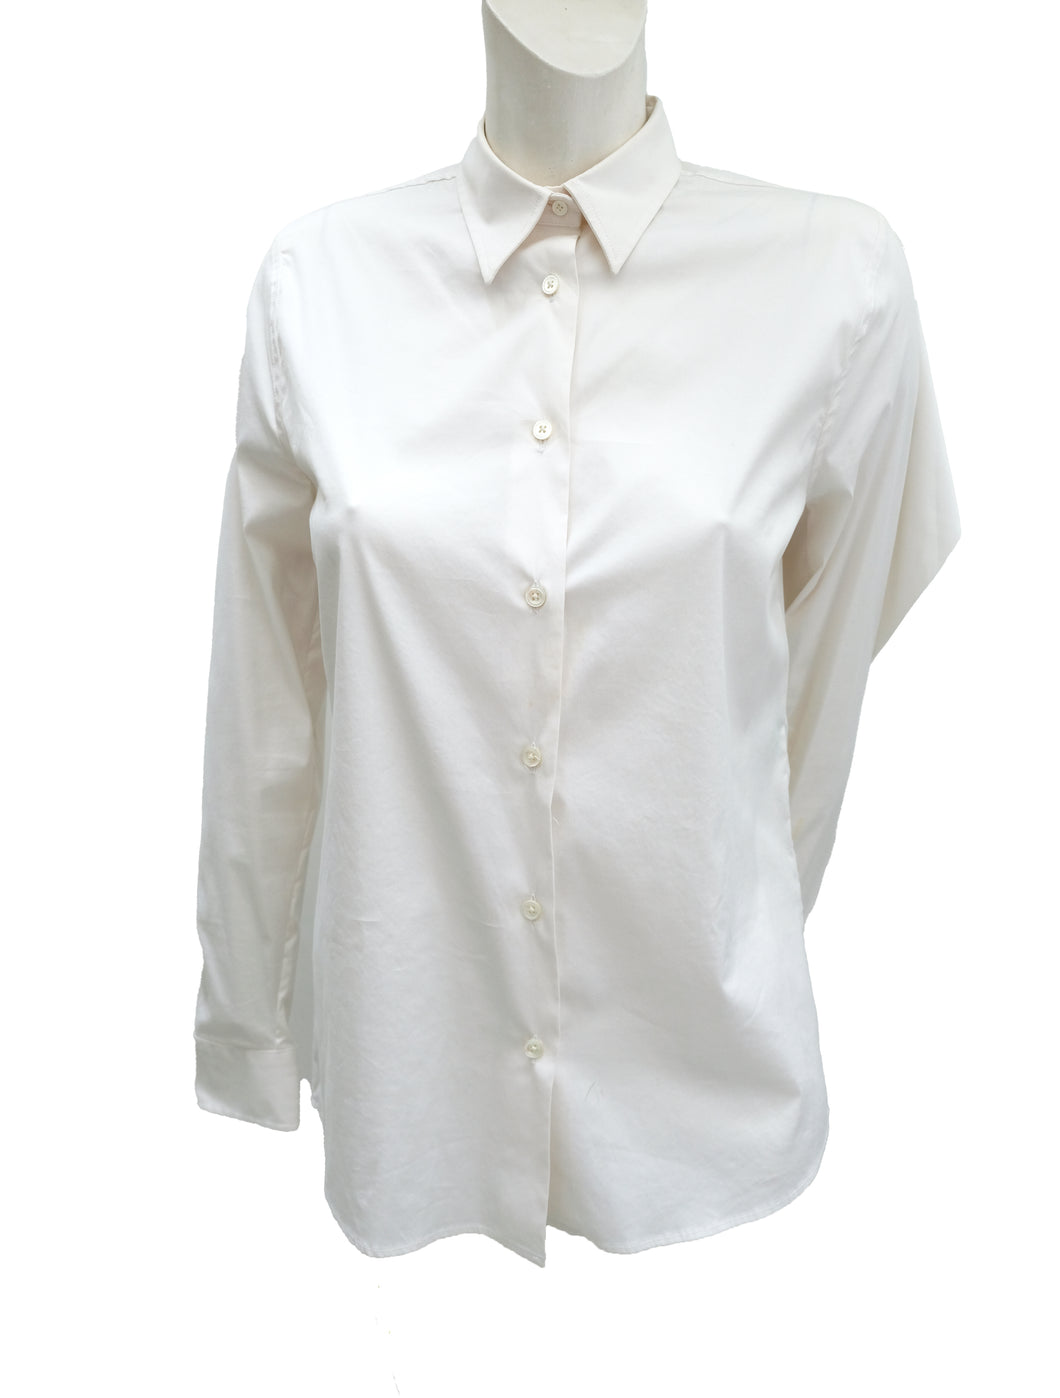 Jean Paul Gaultier White Shirt, UK10